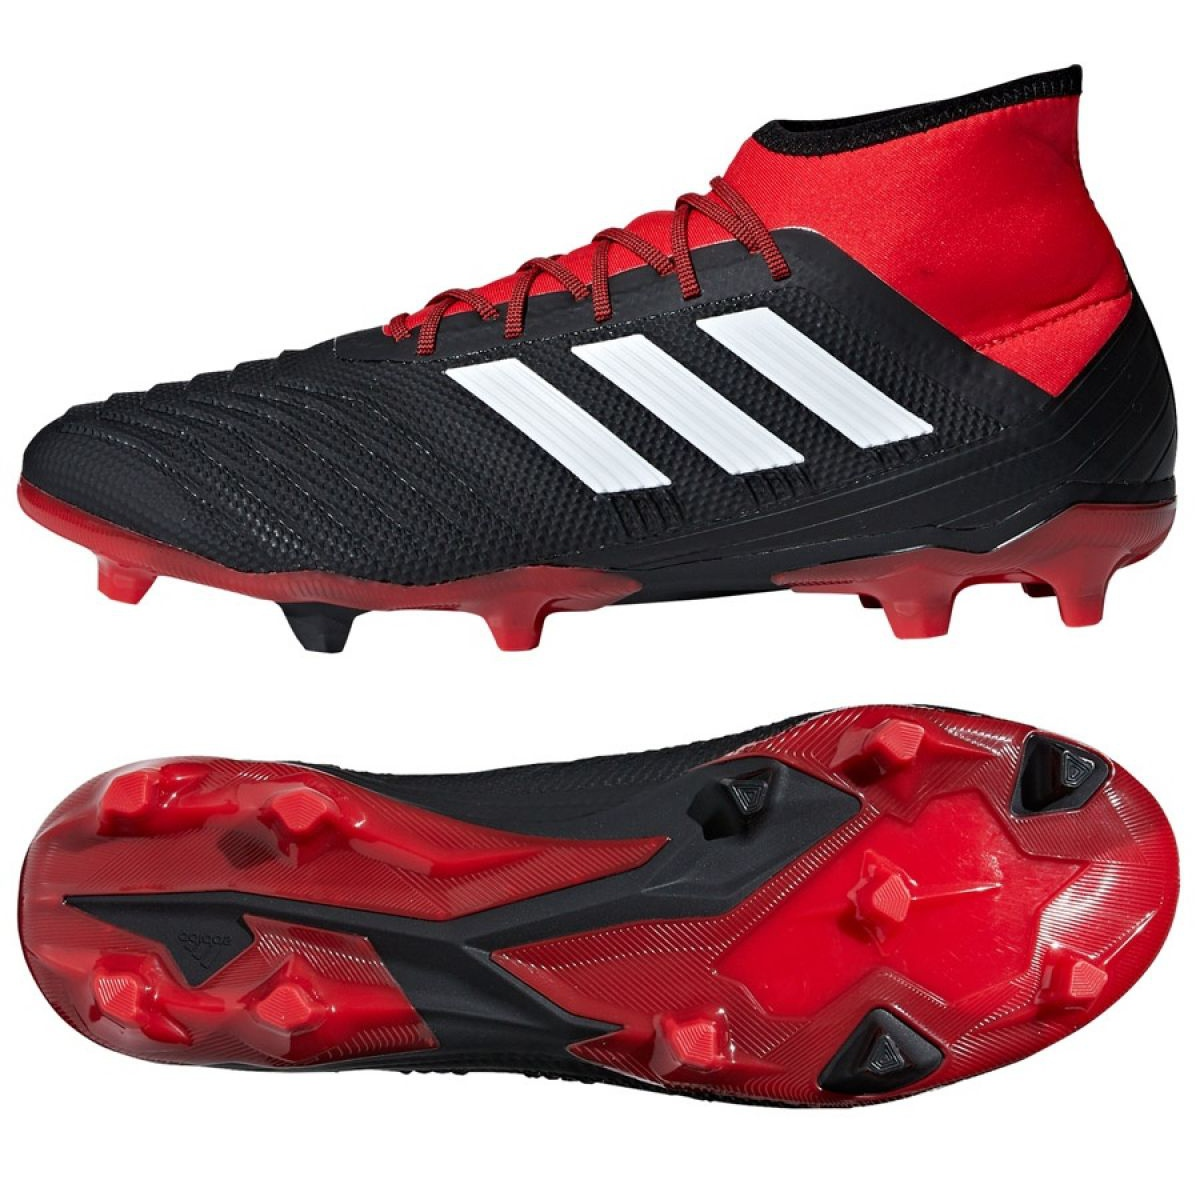 outlet store sale super specials on feet at Football boots adidas Predator 18.2 Fg M DB1999 black black